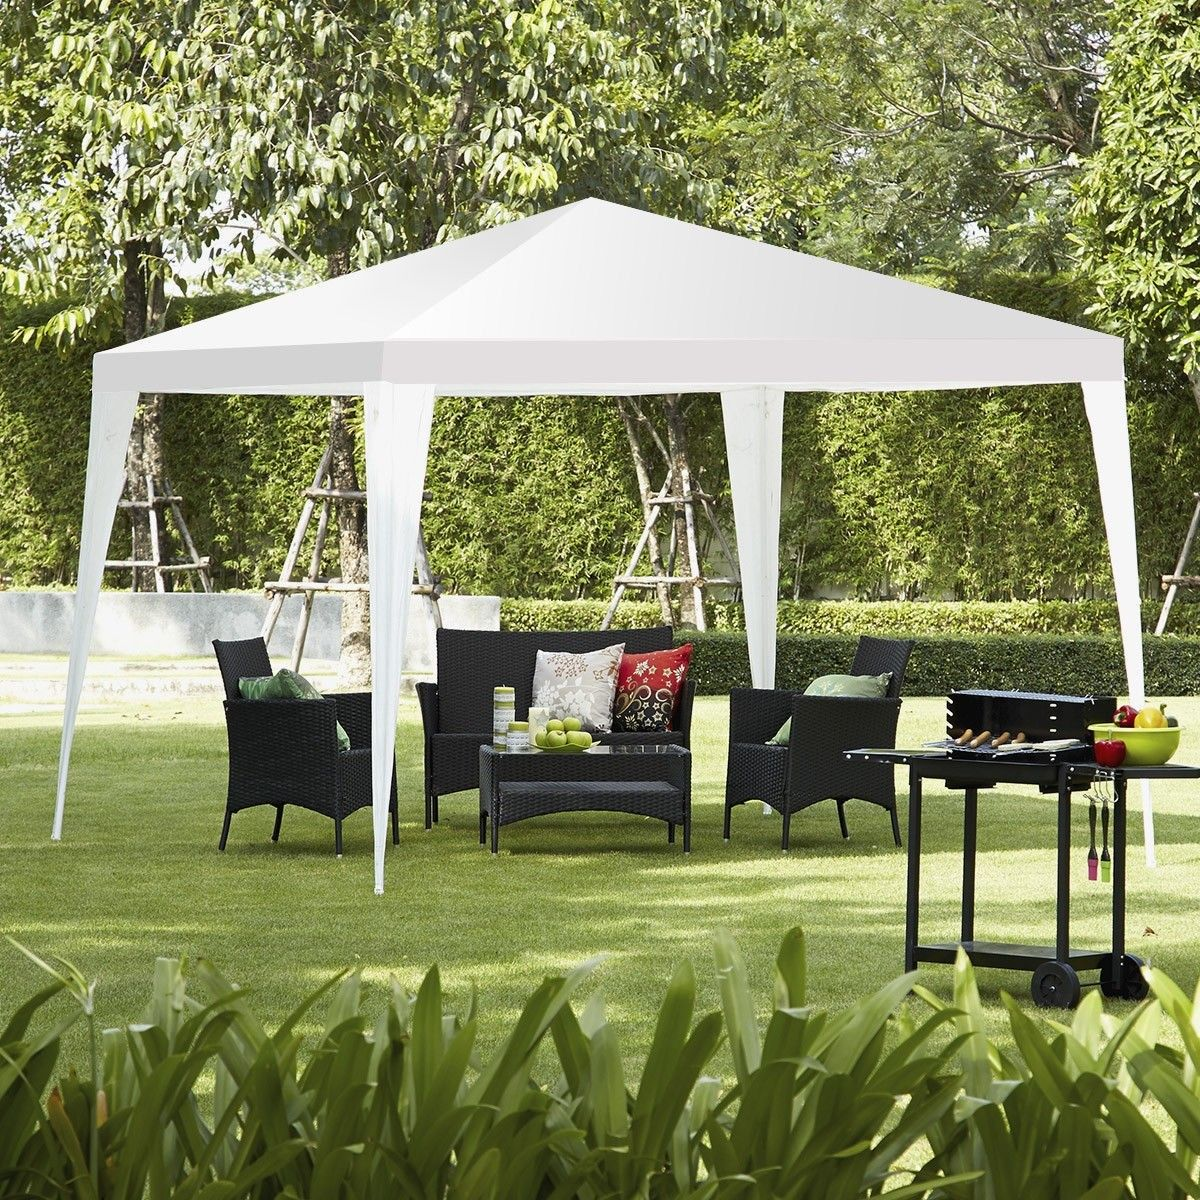 10 X 10 Outdoor Wedding Party Canopy Tent Party Canopy Shade Tent Canopy Tent